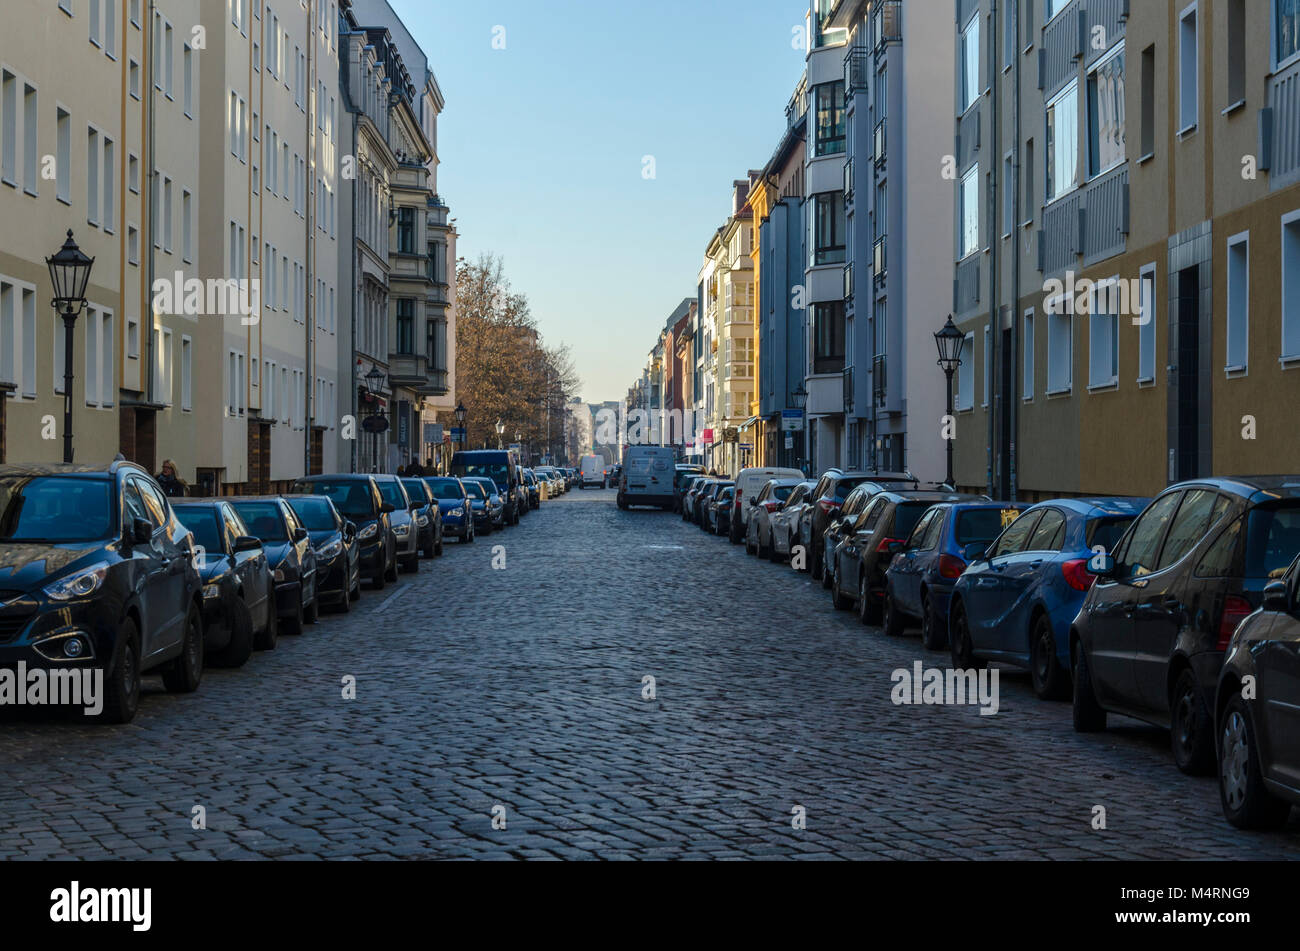 Cars parked on a cobbled street in Berlin, Germany - Stock Image